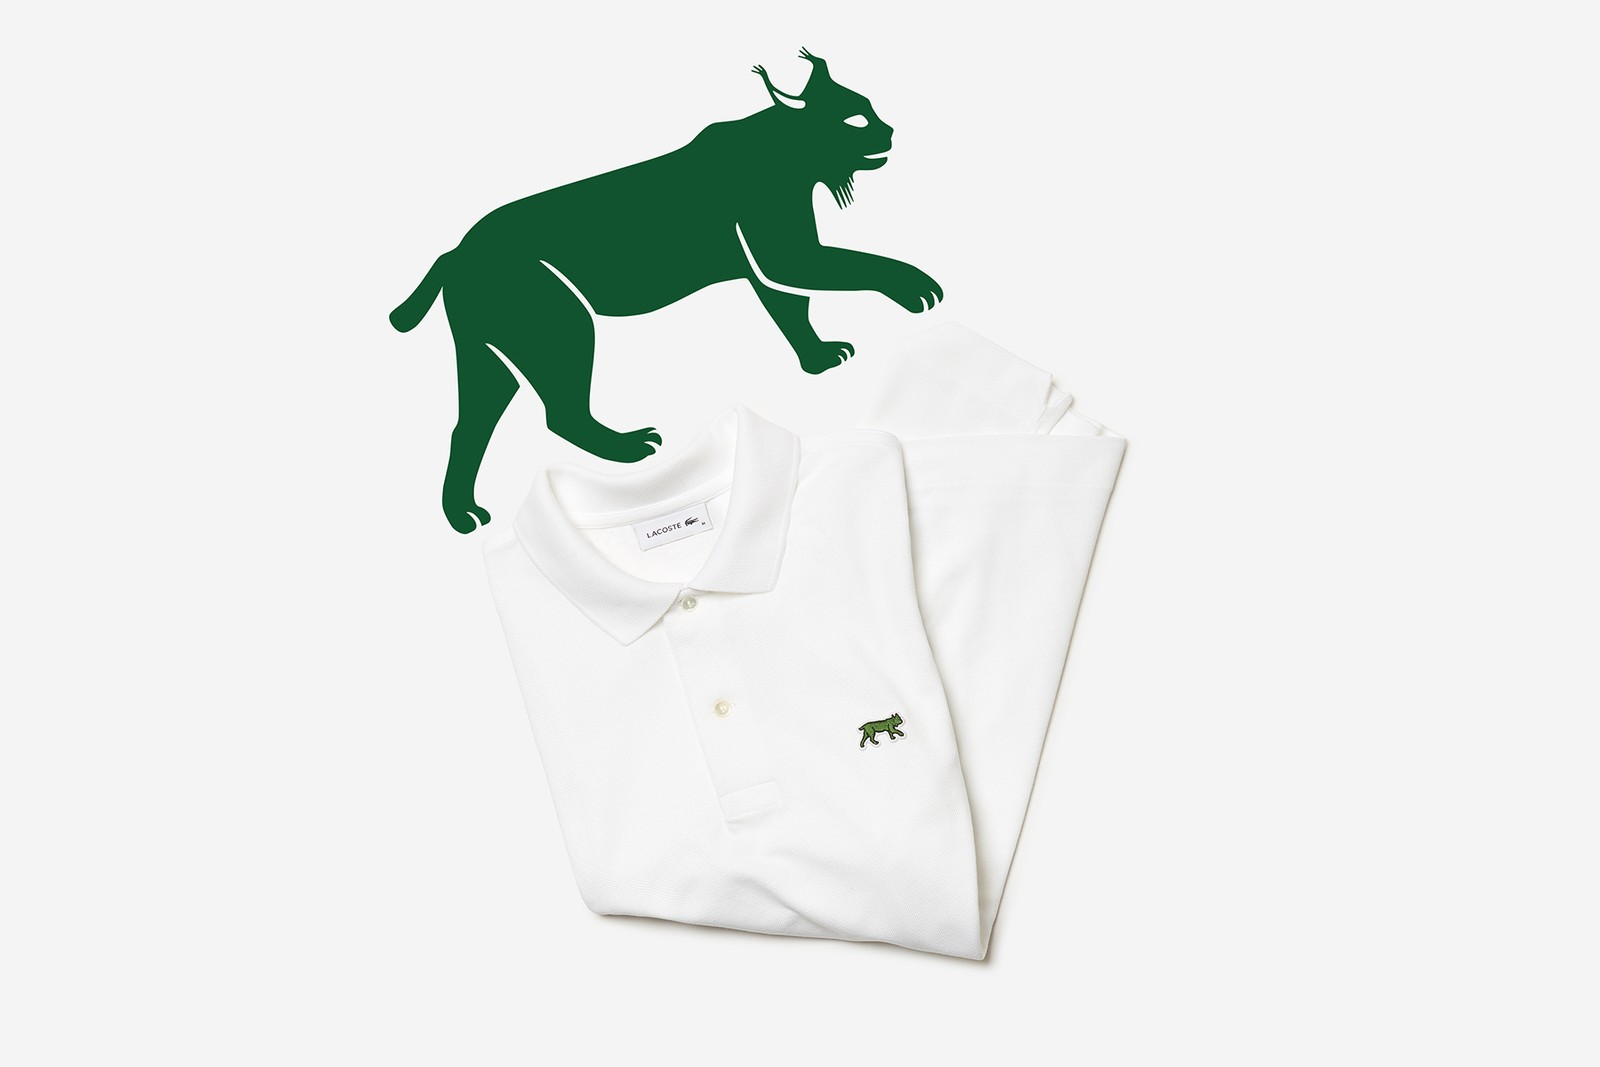 LACOSTE ラコステ ワニ ロゴ 世界各地 絶滅危惧種 限定 ポロシャツ 発売情報 解禁 日本 ウォンバット ギンザ